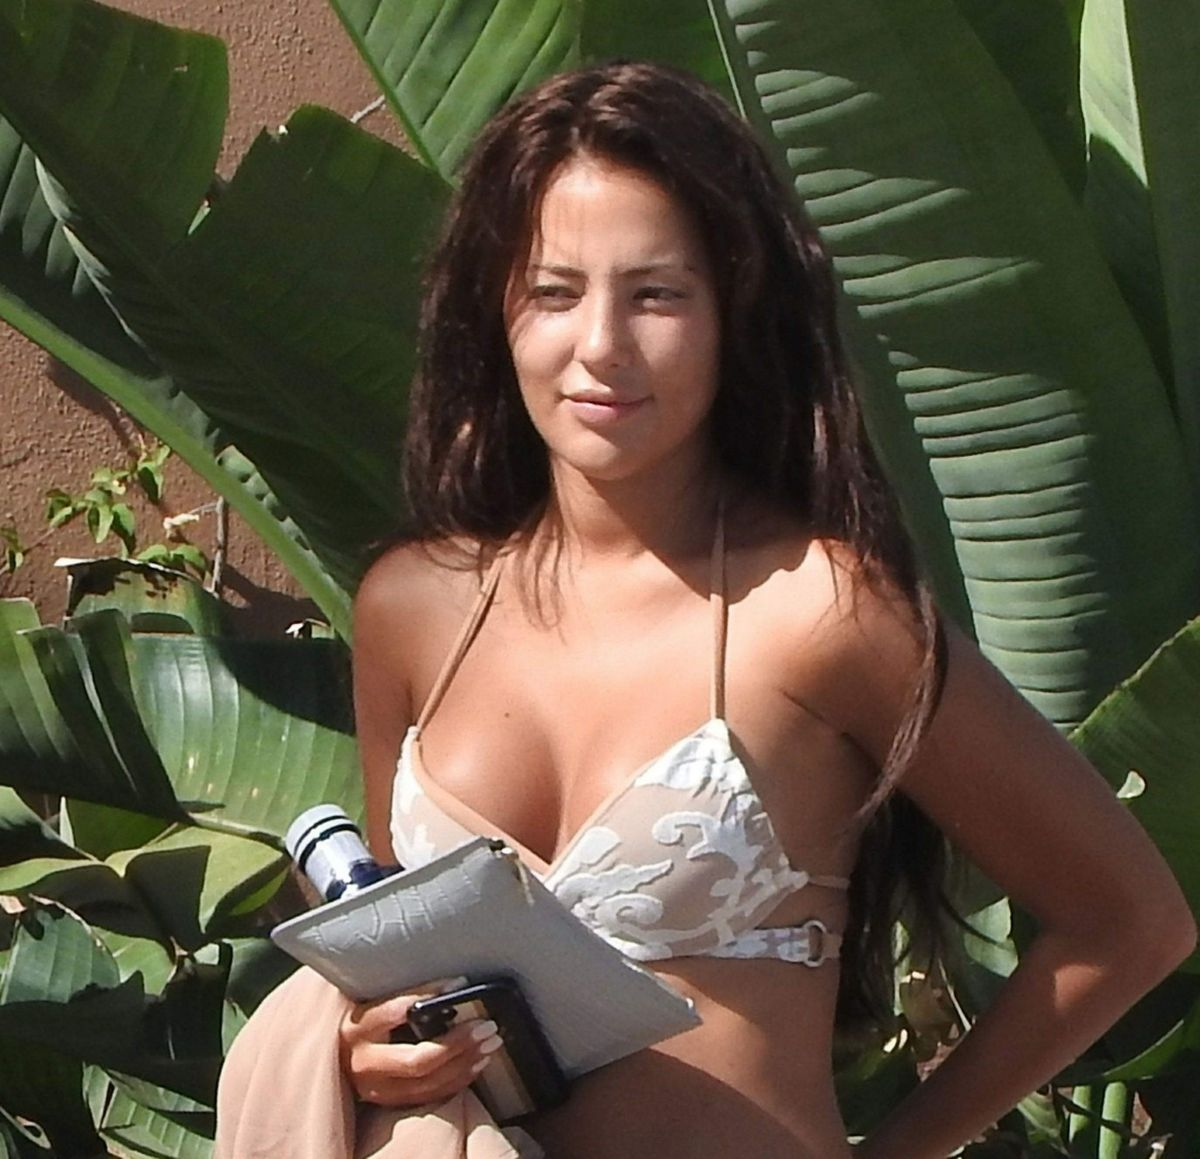 YAZMIN OUKHELLOU at Pool of Her Hotel in Marbella 08/13/2017